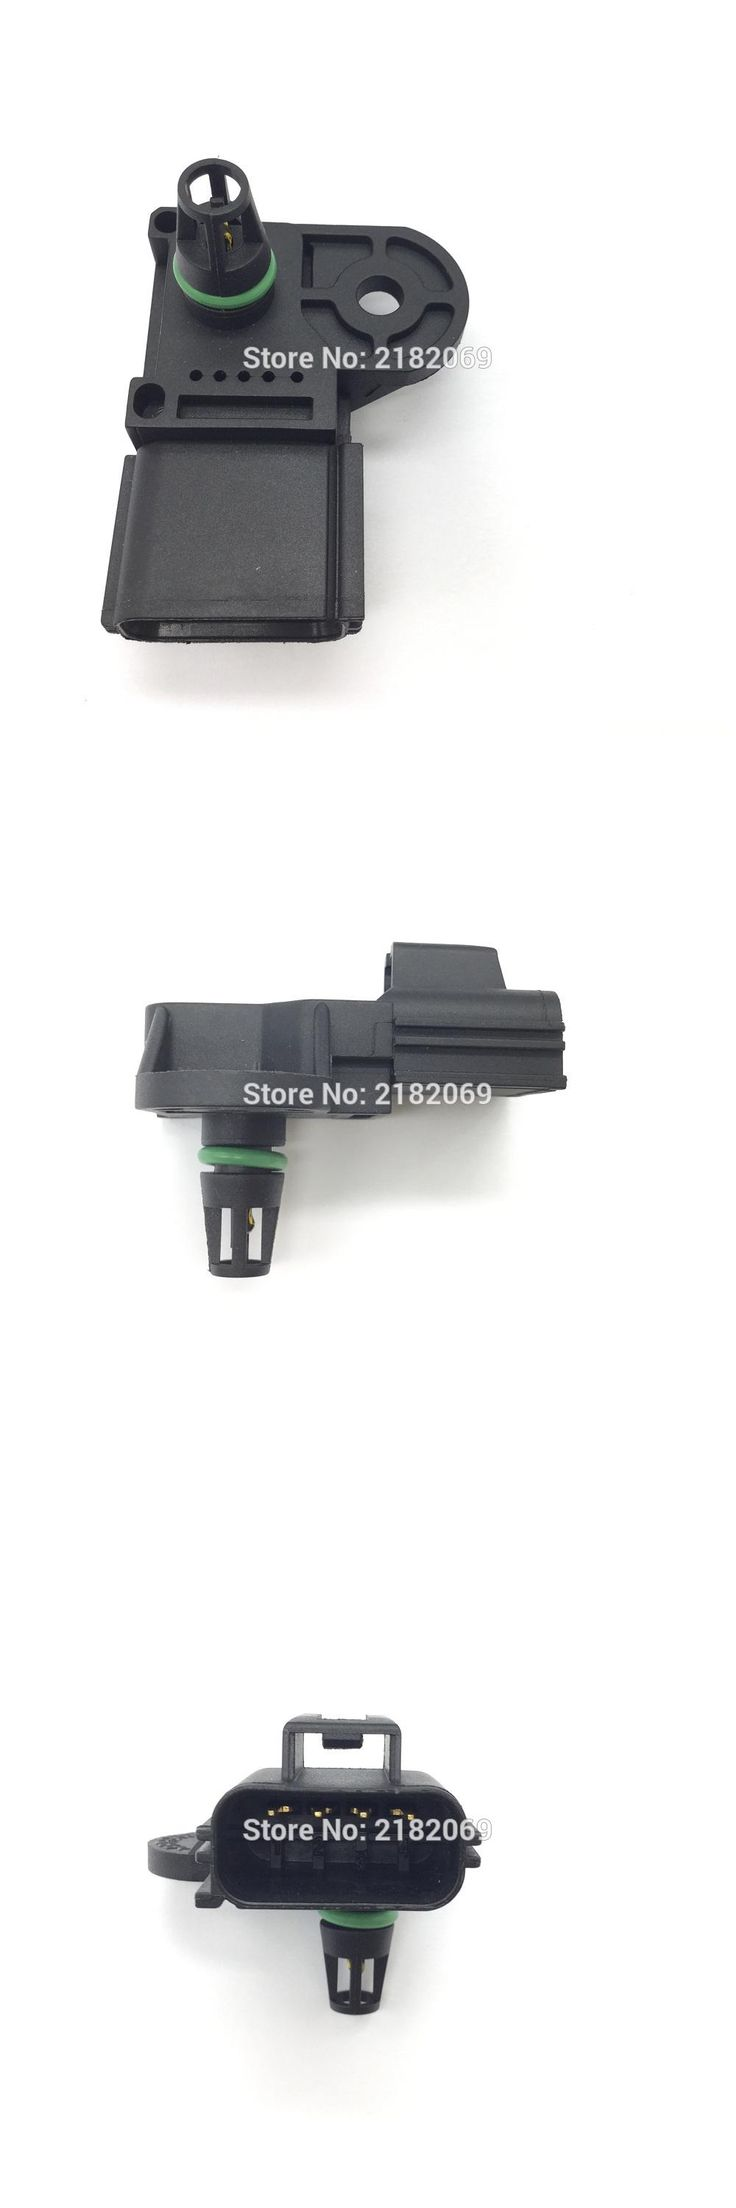 [Visit to Buy] MAP Sensor for Ford Transit Escape Focus Fusion Ranger Mercury Mariner Mazda 6  2.3L/2.0L 1S7A9F479AB 0261230045  30658184 #Advertisement